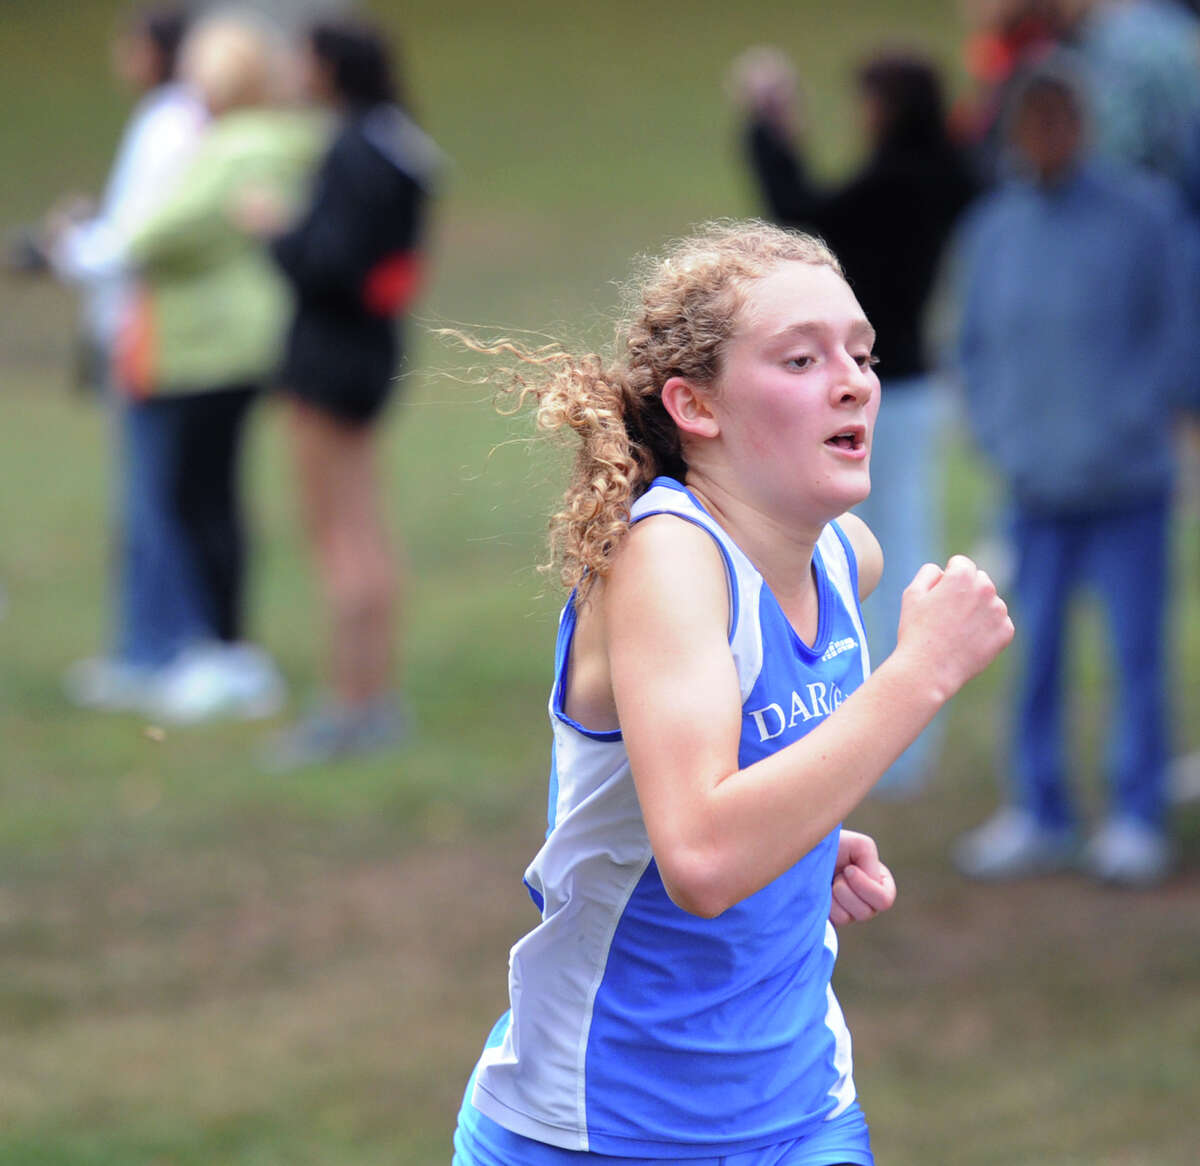 Second place finisher Kate Halabi of Darien High School during the girls high school cross country meet at Greenwich Point, Conn., Tuesday, Sept. 30, 2014.